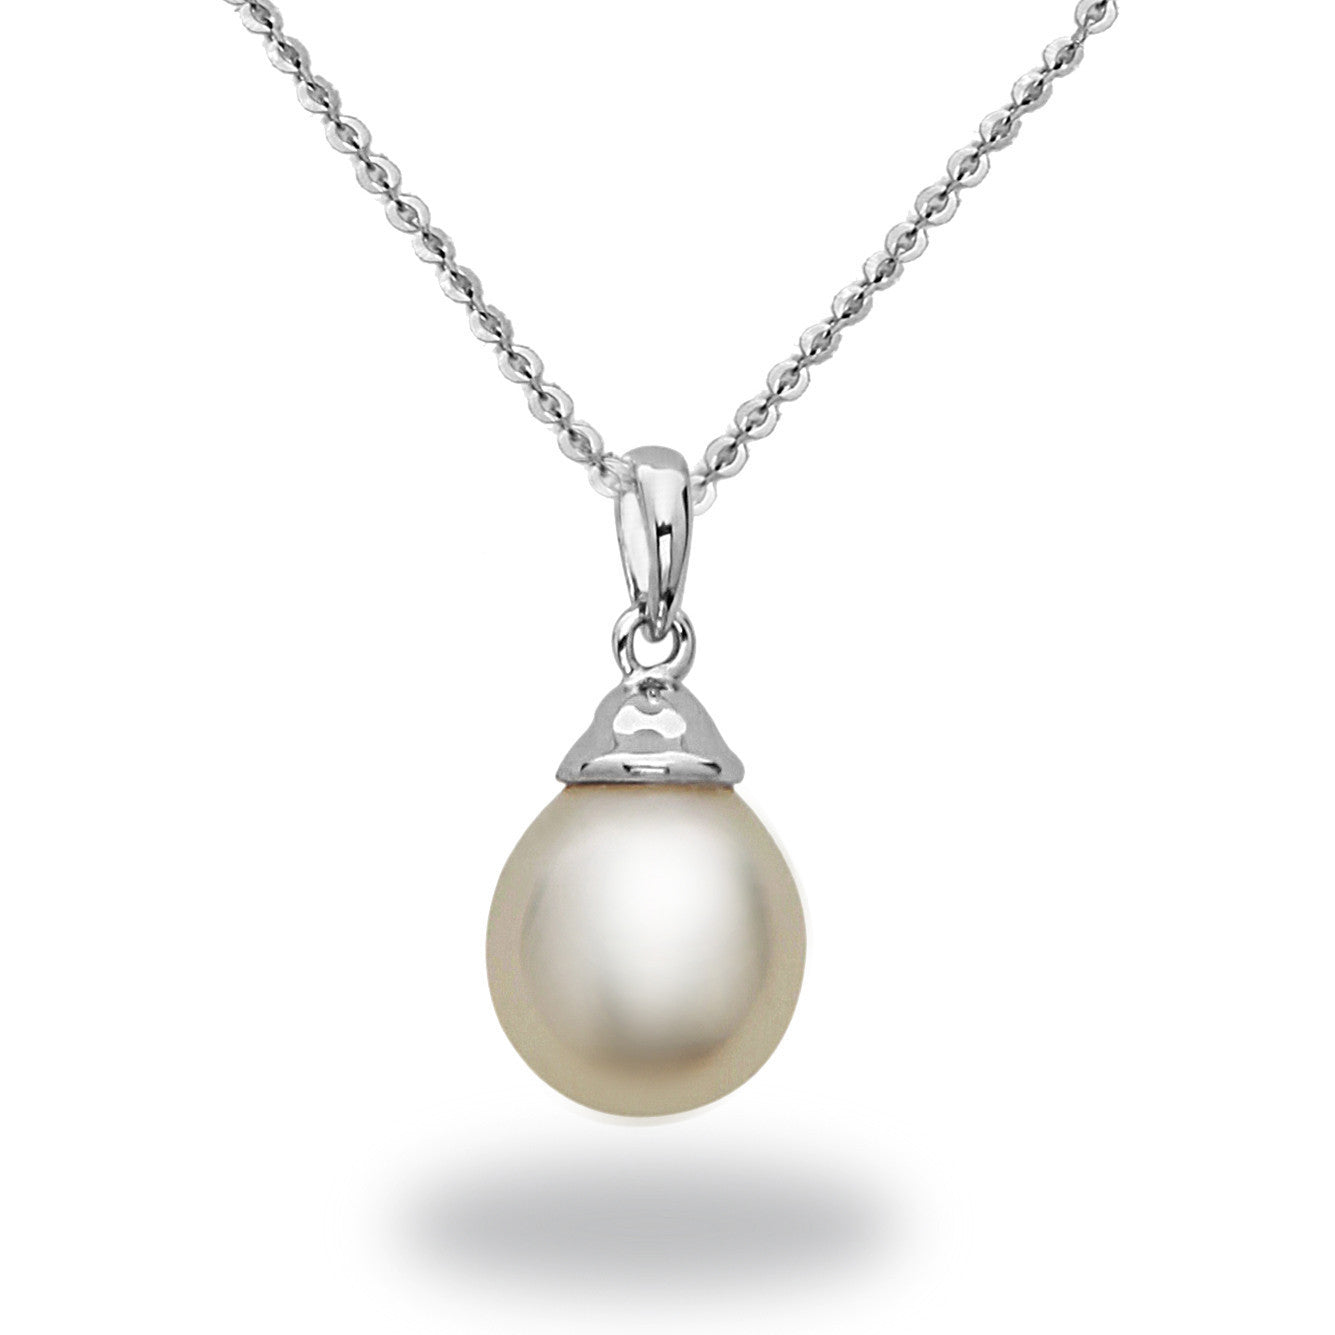 8 9mm white south sea pearl pendant necklace tara pearls 8 9mm white south sea pearl pendant necklace aloadofball Gallery